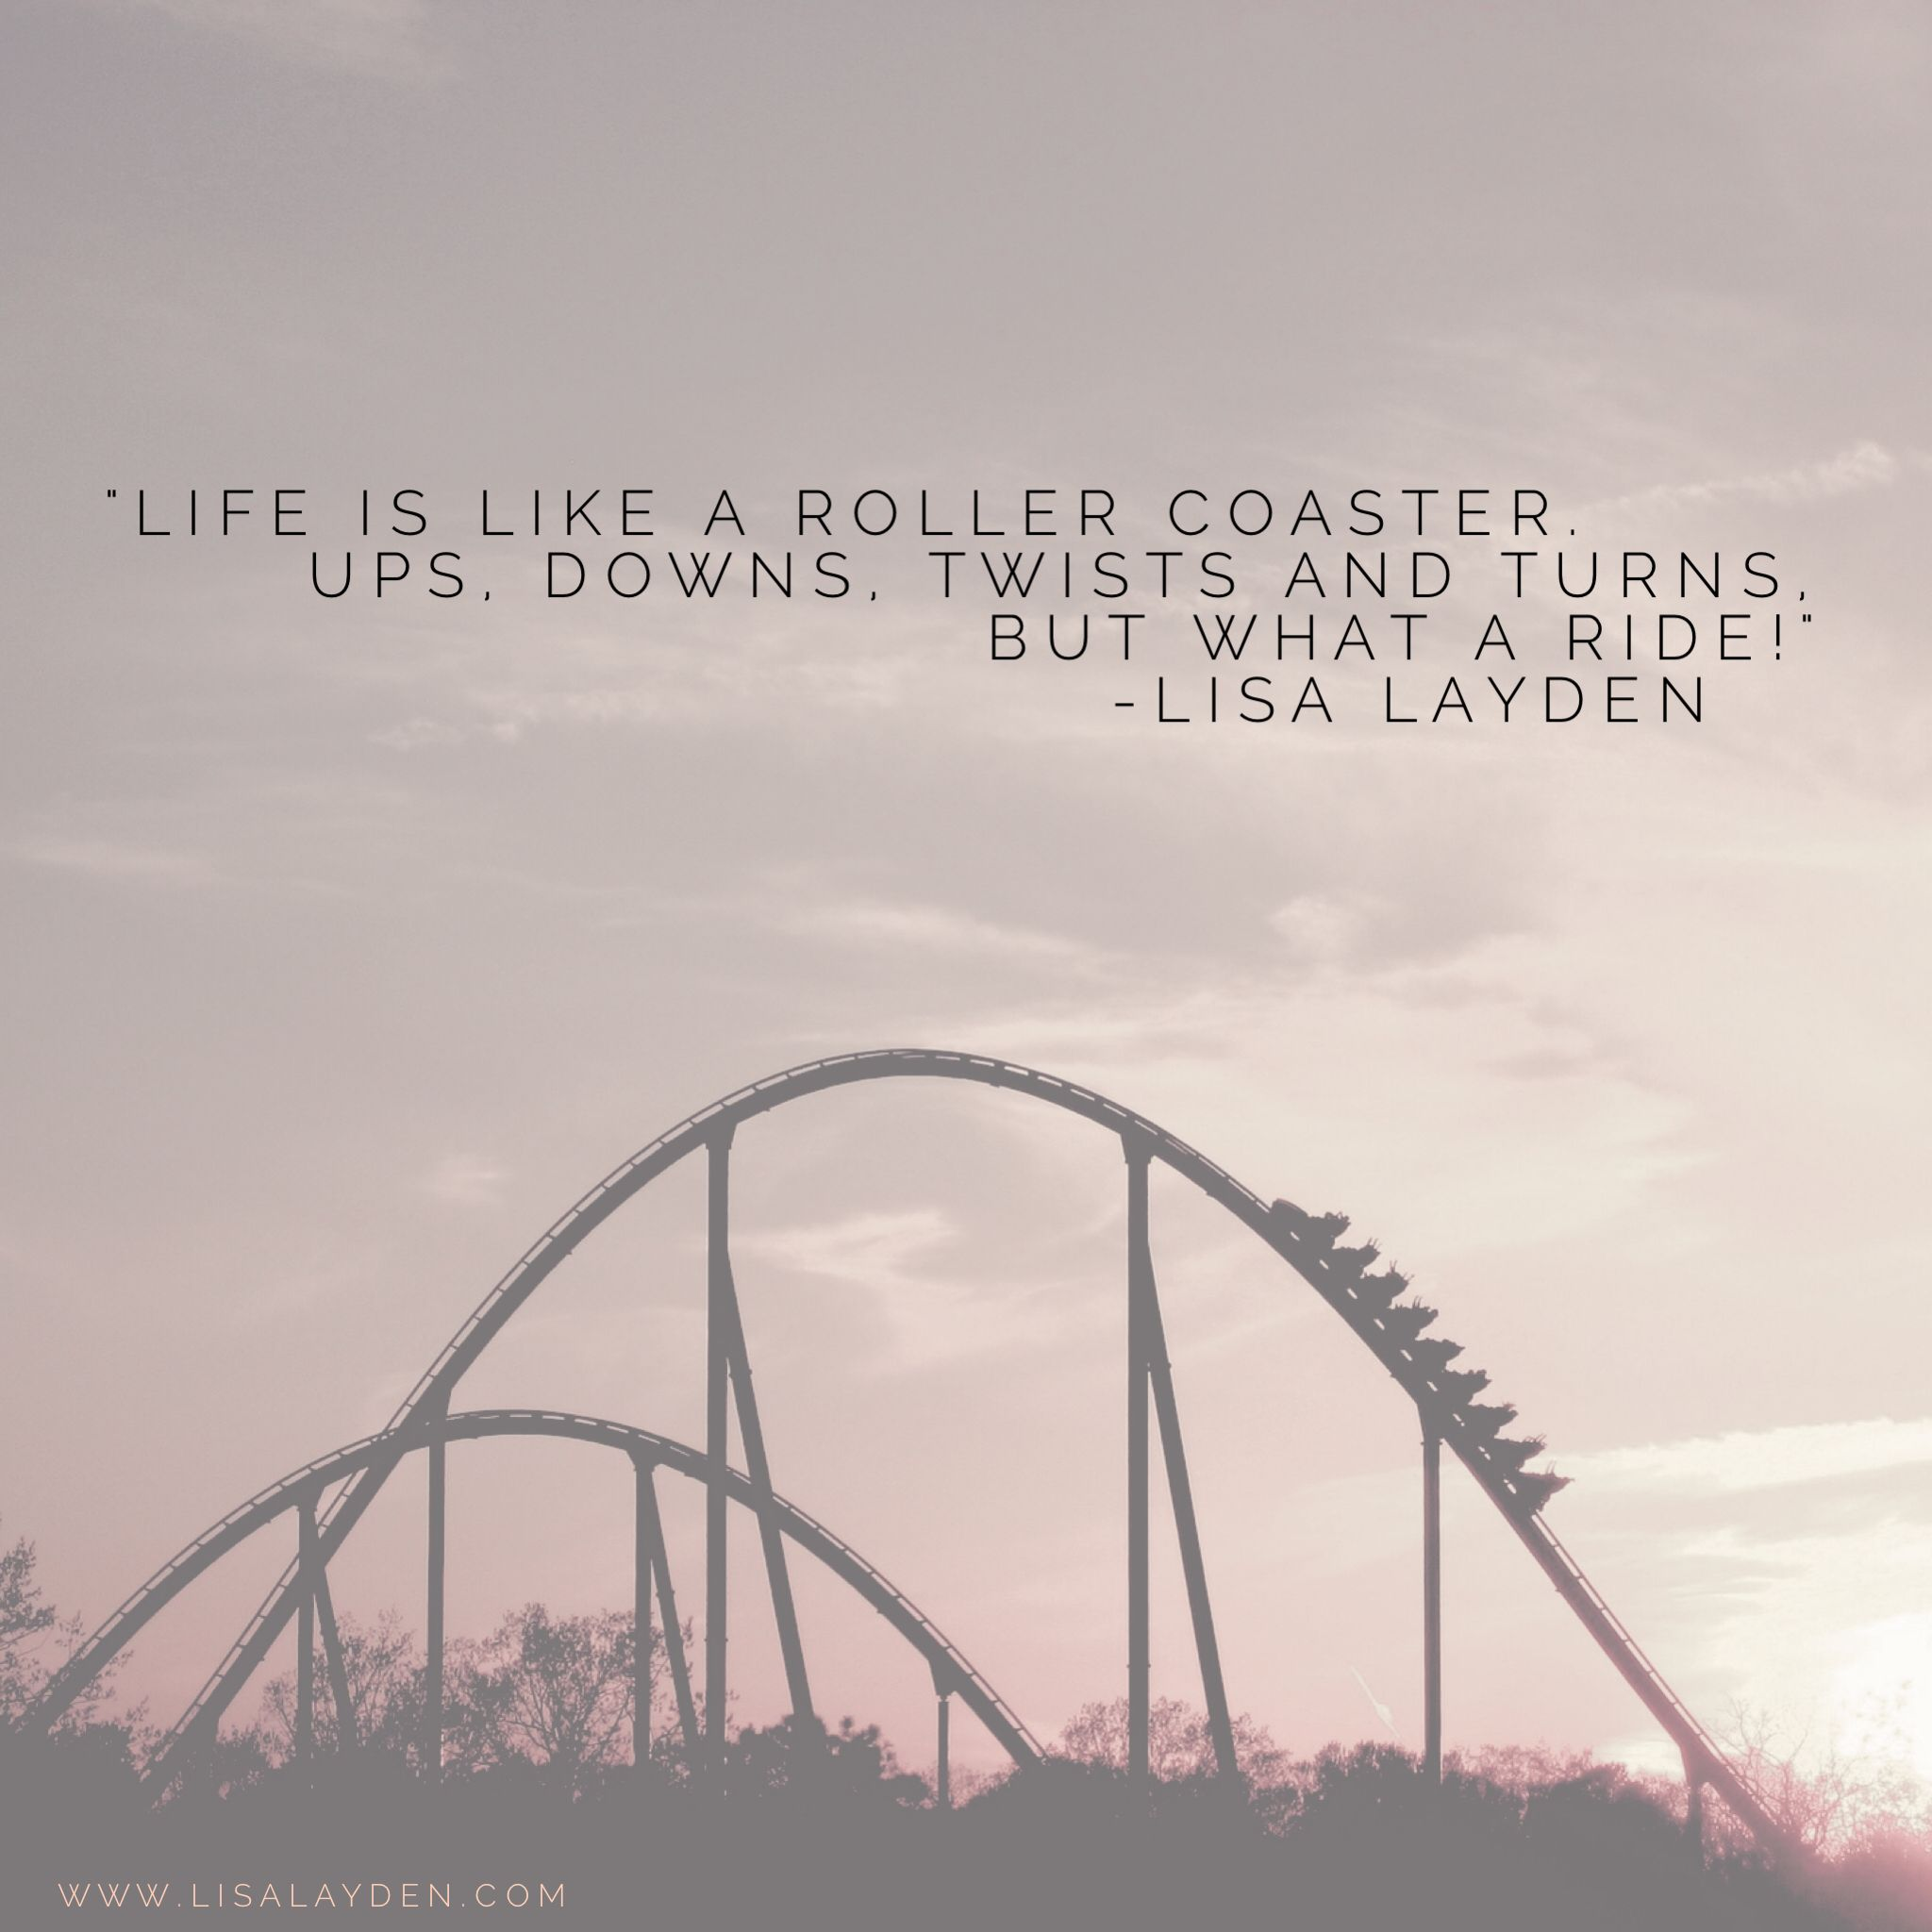 The Rollercoaster of Life is Full of Ups and Downs